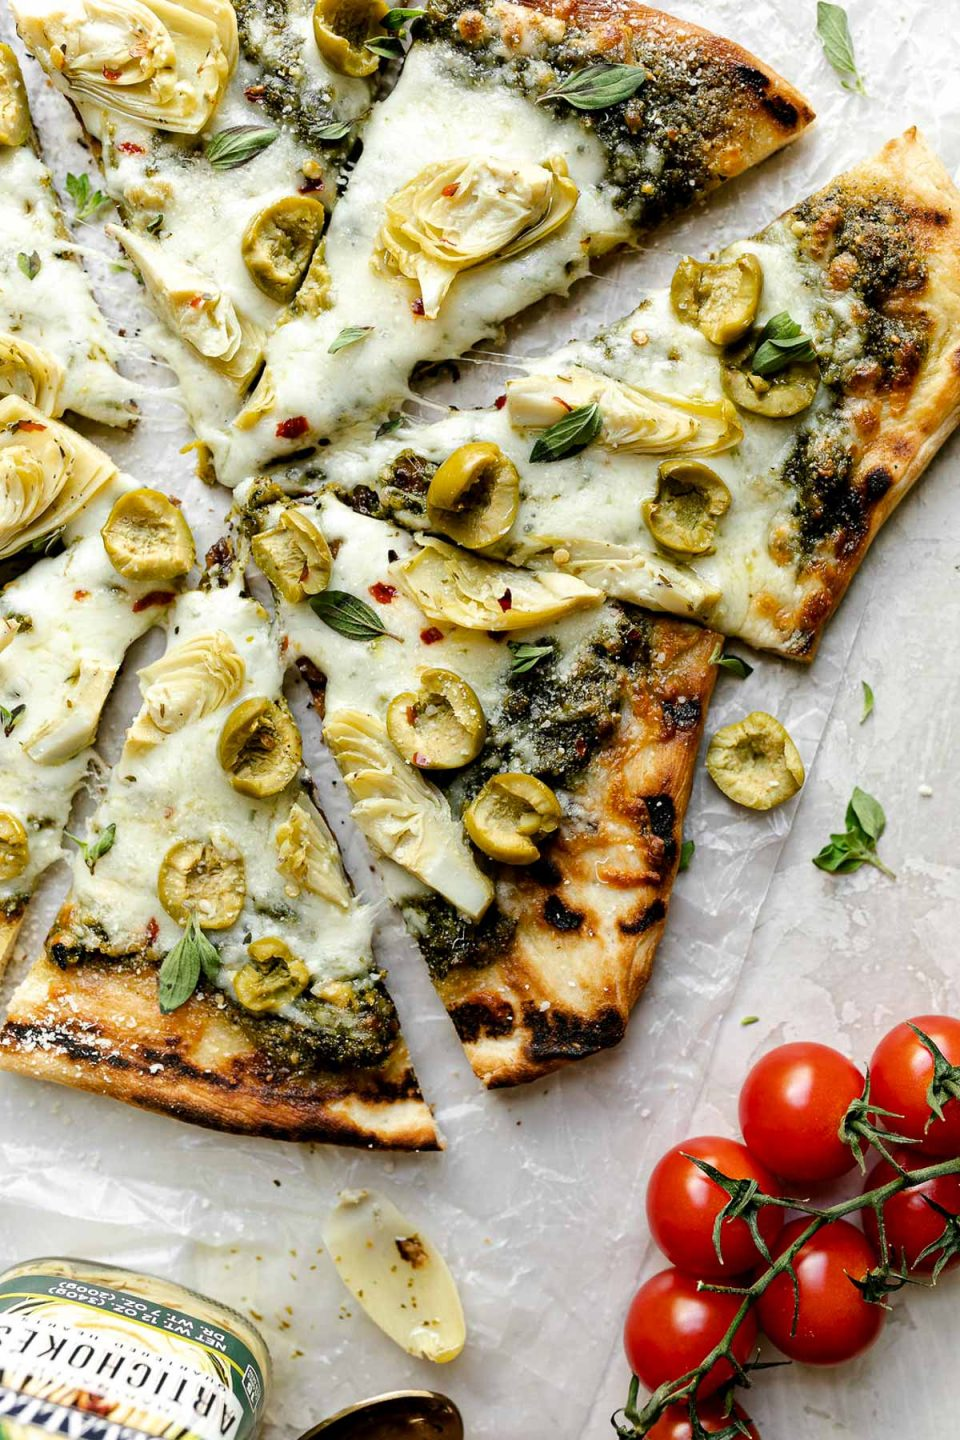 Grilled pizza topped with pesto, artichokes, & castelvetrano olives. The pizza sits atop a white surface, surrounded by fresh basil, tomatoes, & a jar of DeLallo castelvetrano olives.